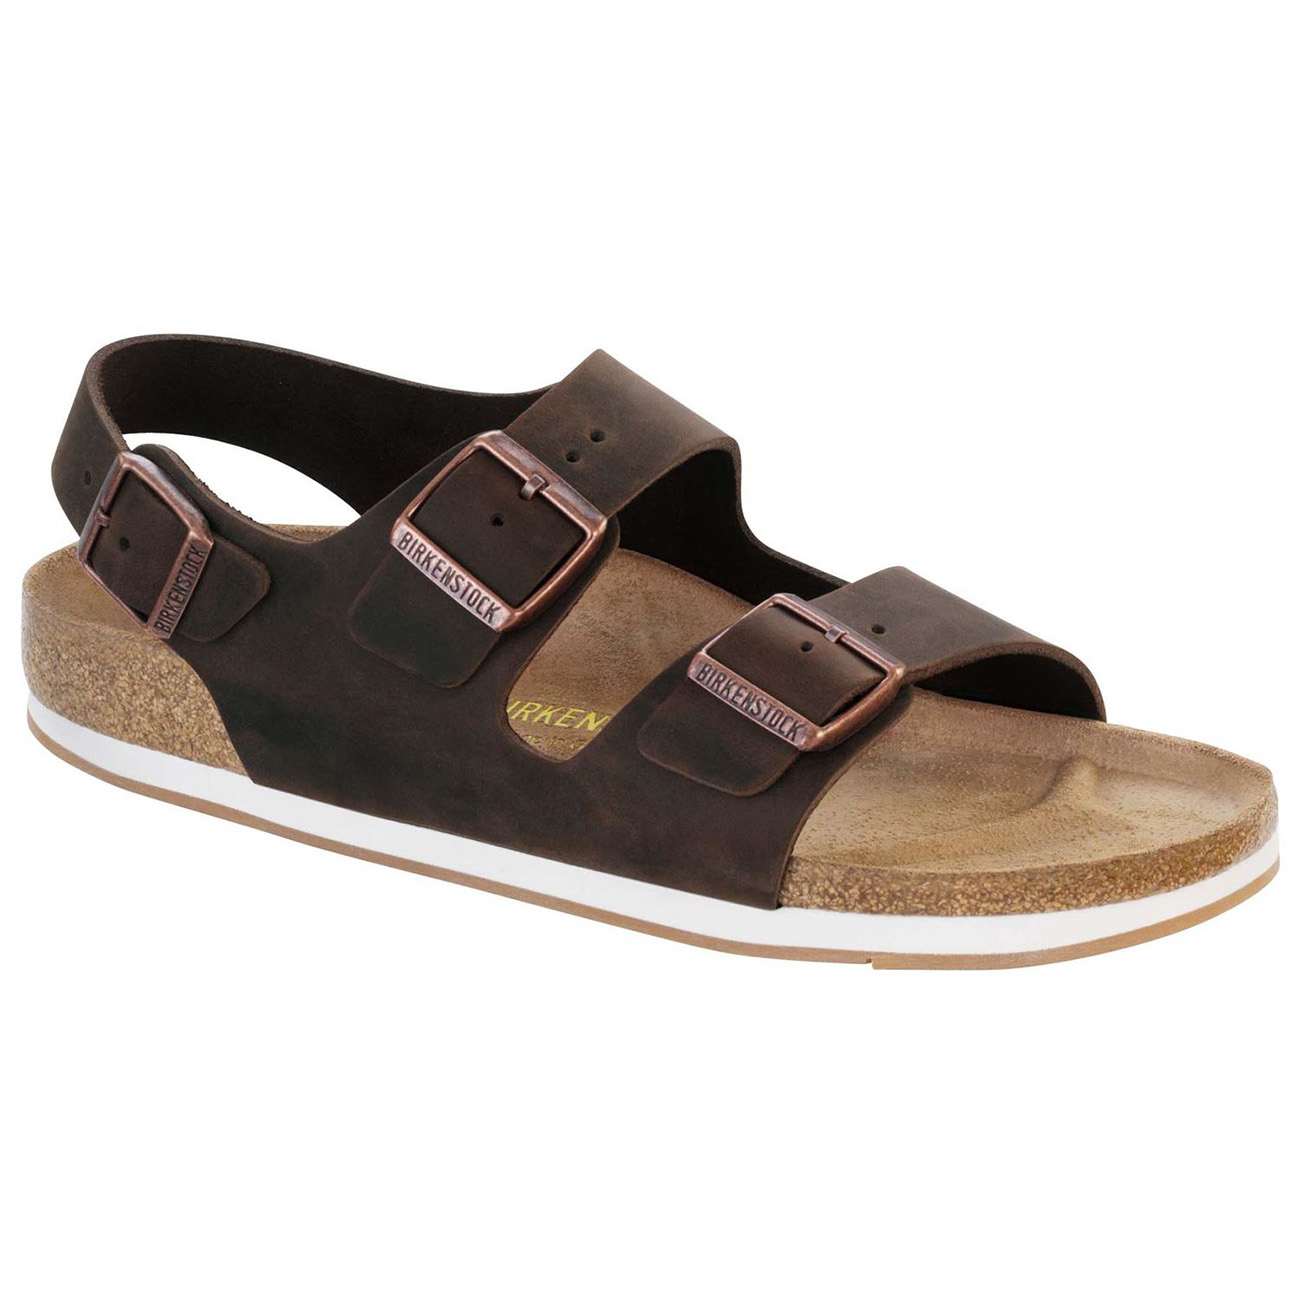 Unisex Adults Birkenstock Milano Oiled Leather